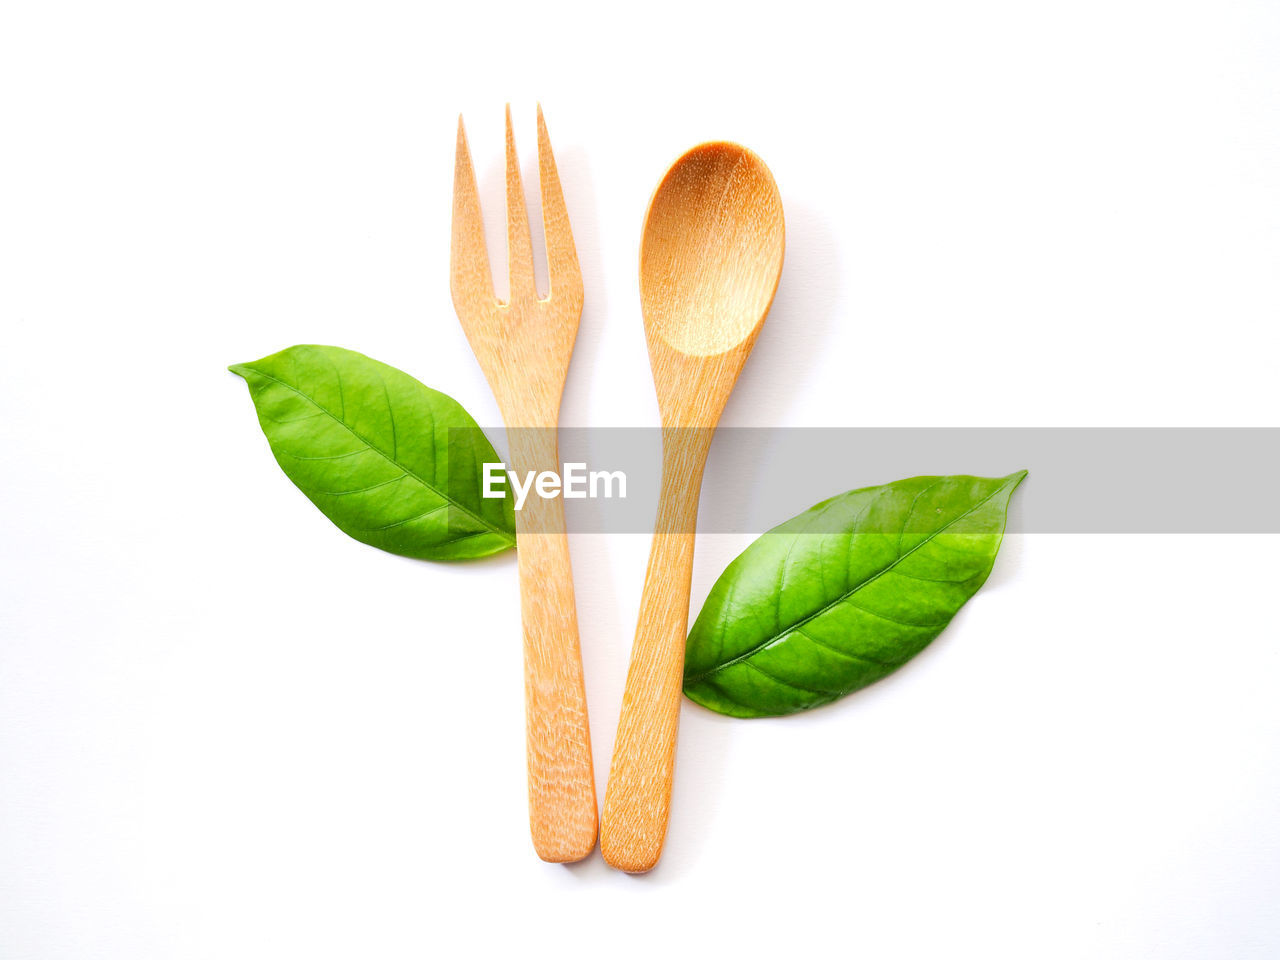 leaf, plant part, studio shot, white background, close-up, still life, indoors, freshness, no people, food, green color, cut out, nature, food and drink, orange color, healthy eating, wellbeing, plant, high angle view, eating utensil, leaves